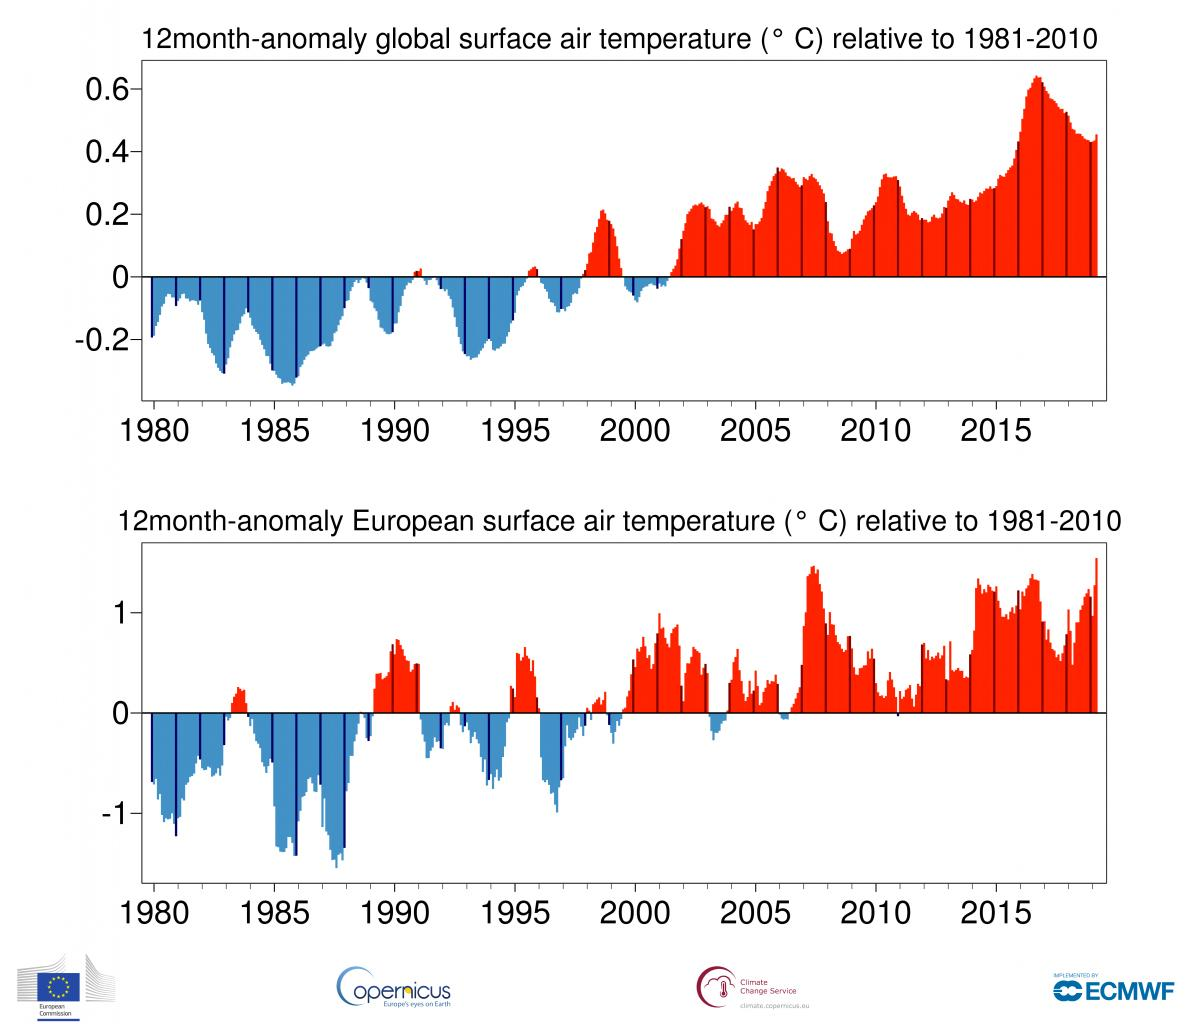 Temperature globali-ts_12month_anomaly_global_ei_2t_201903.jpg